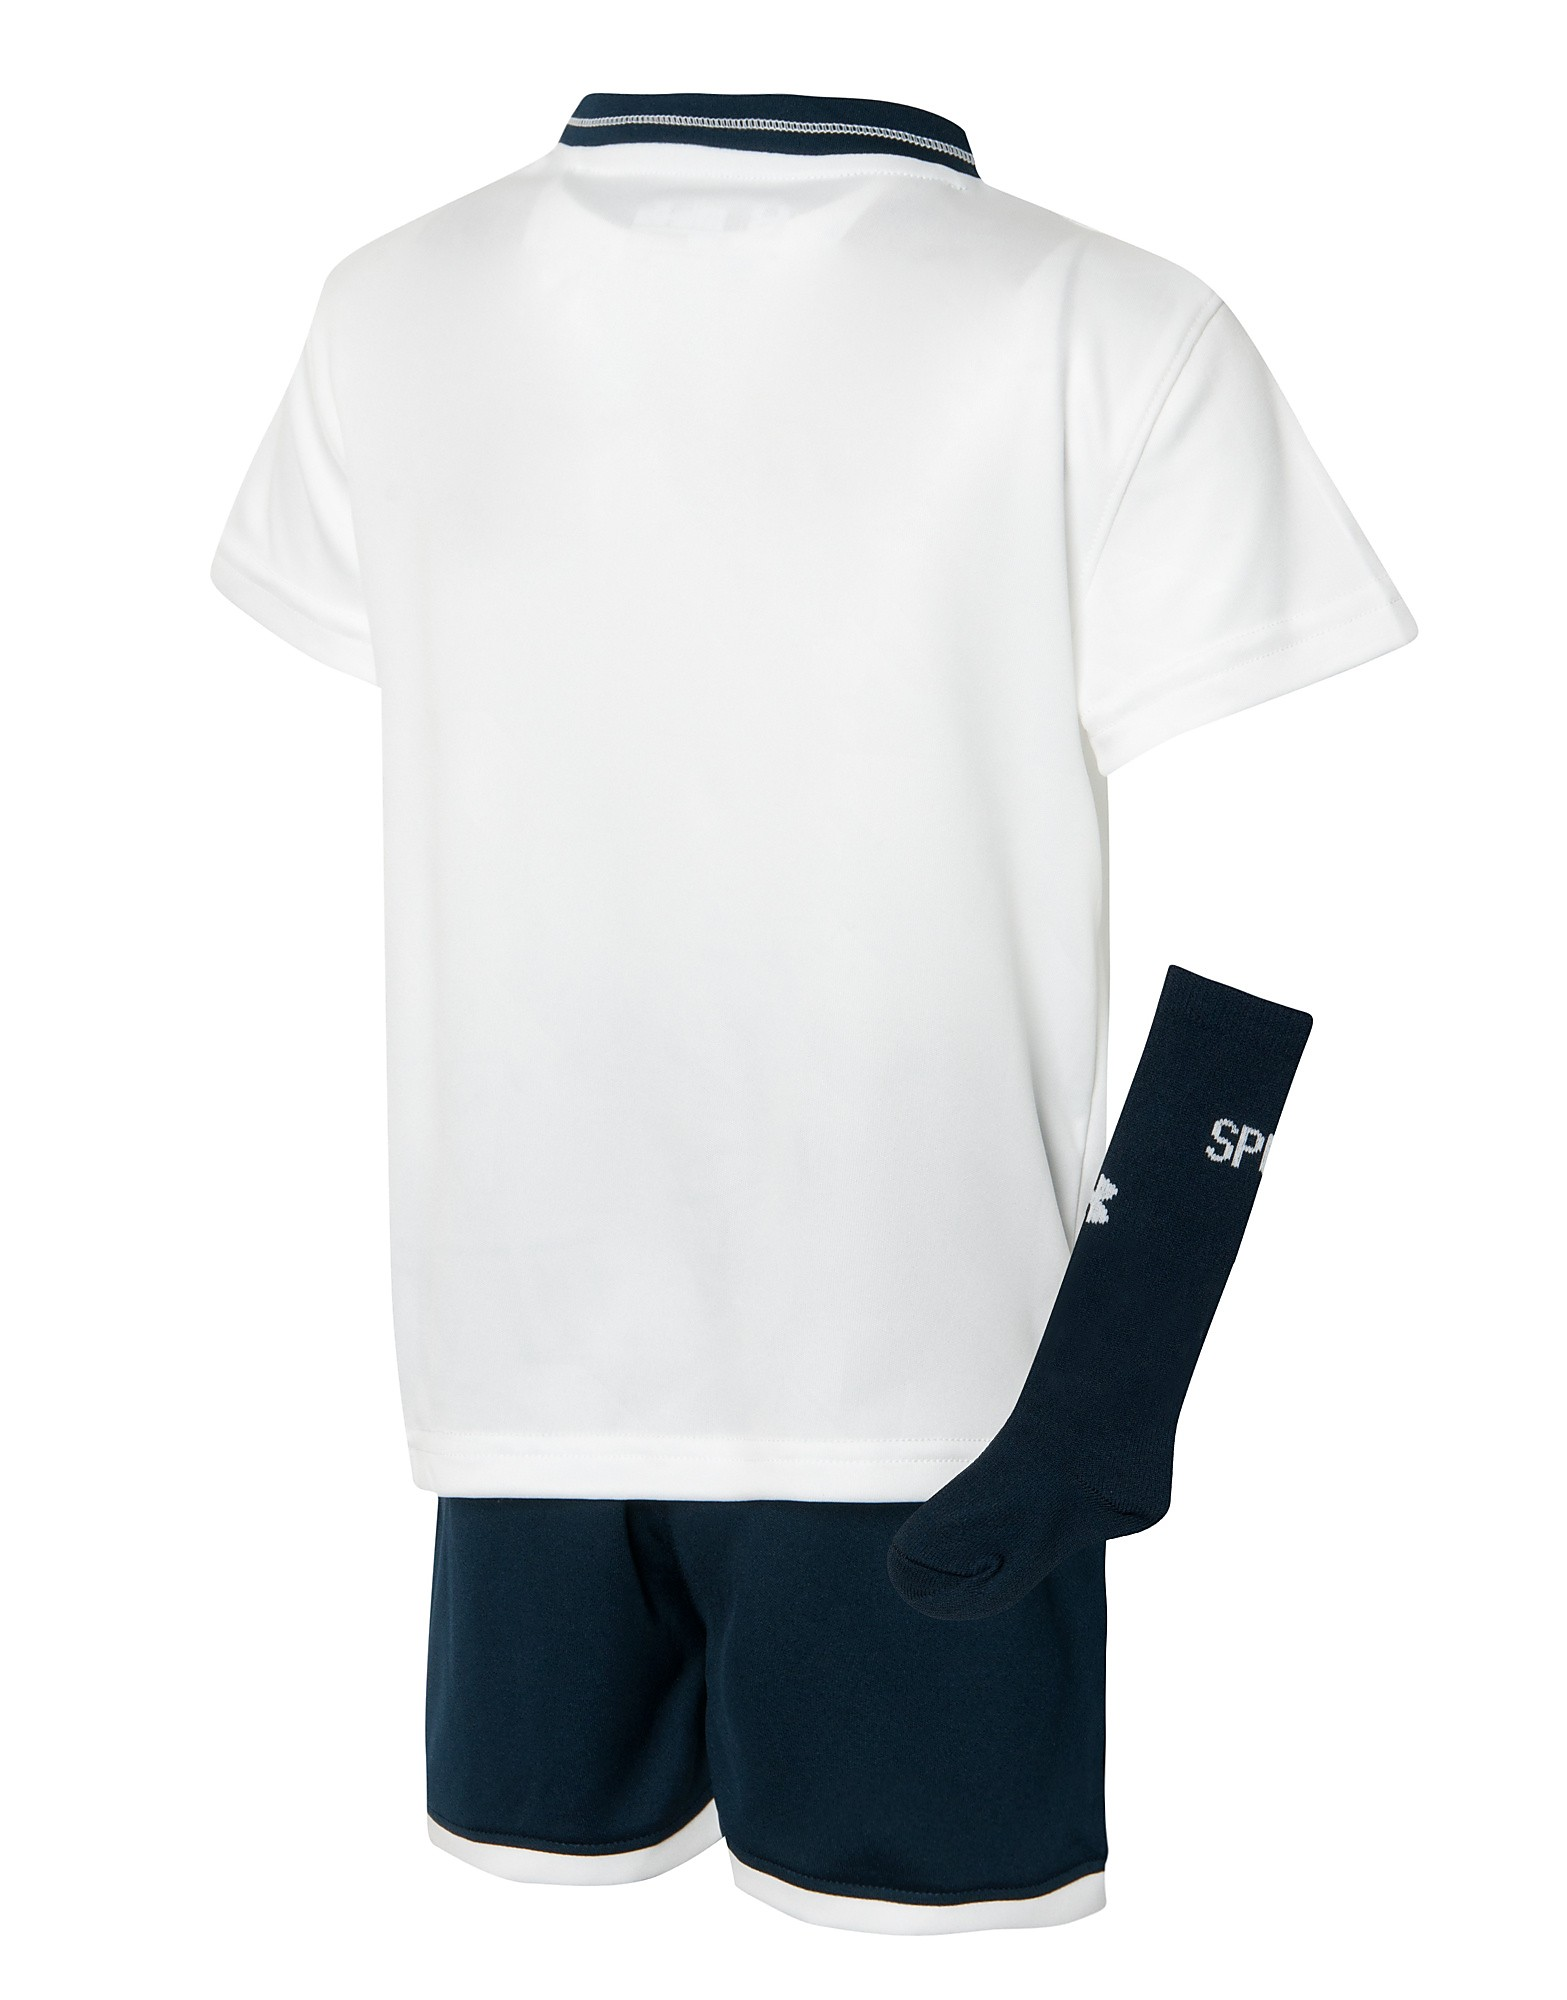 Under Armour Tottenham Hotspur 2013/14 Infant Home